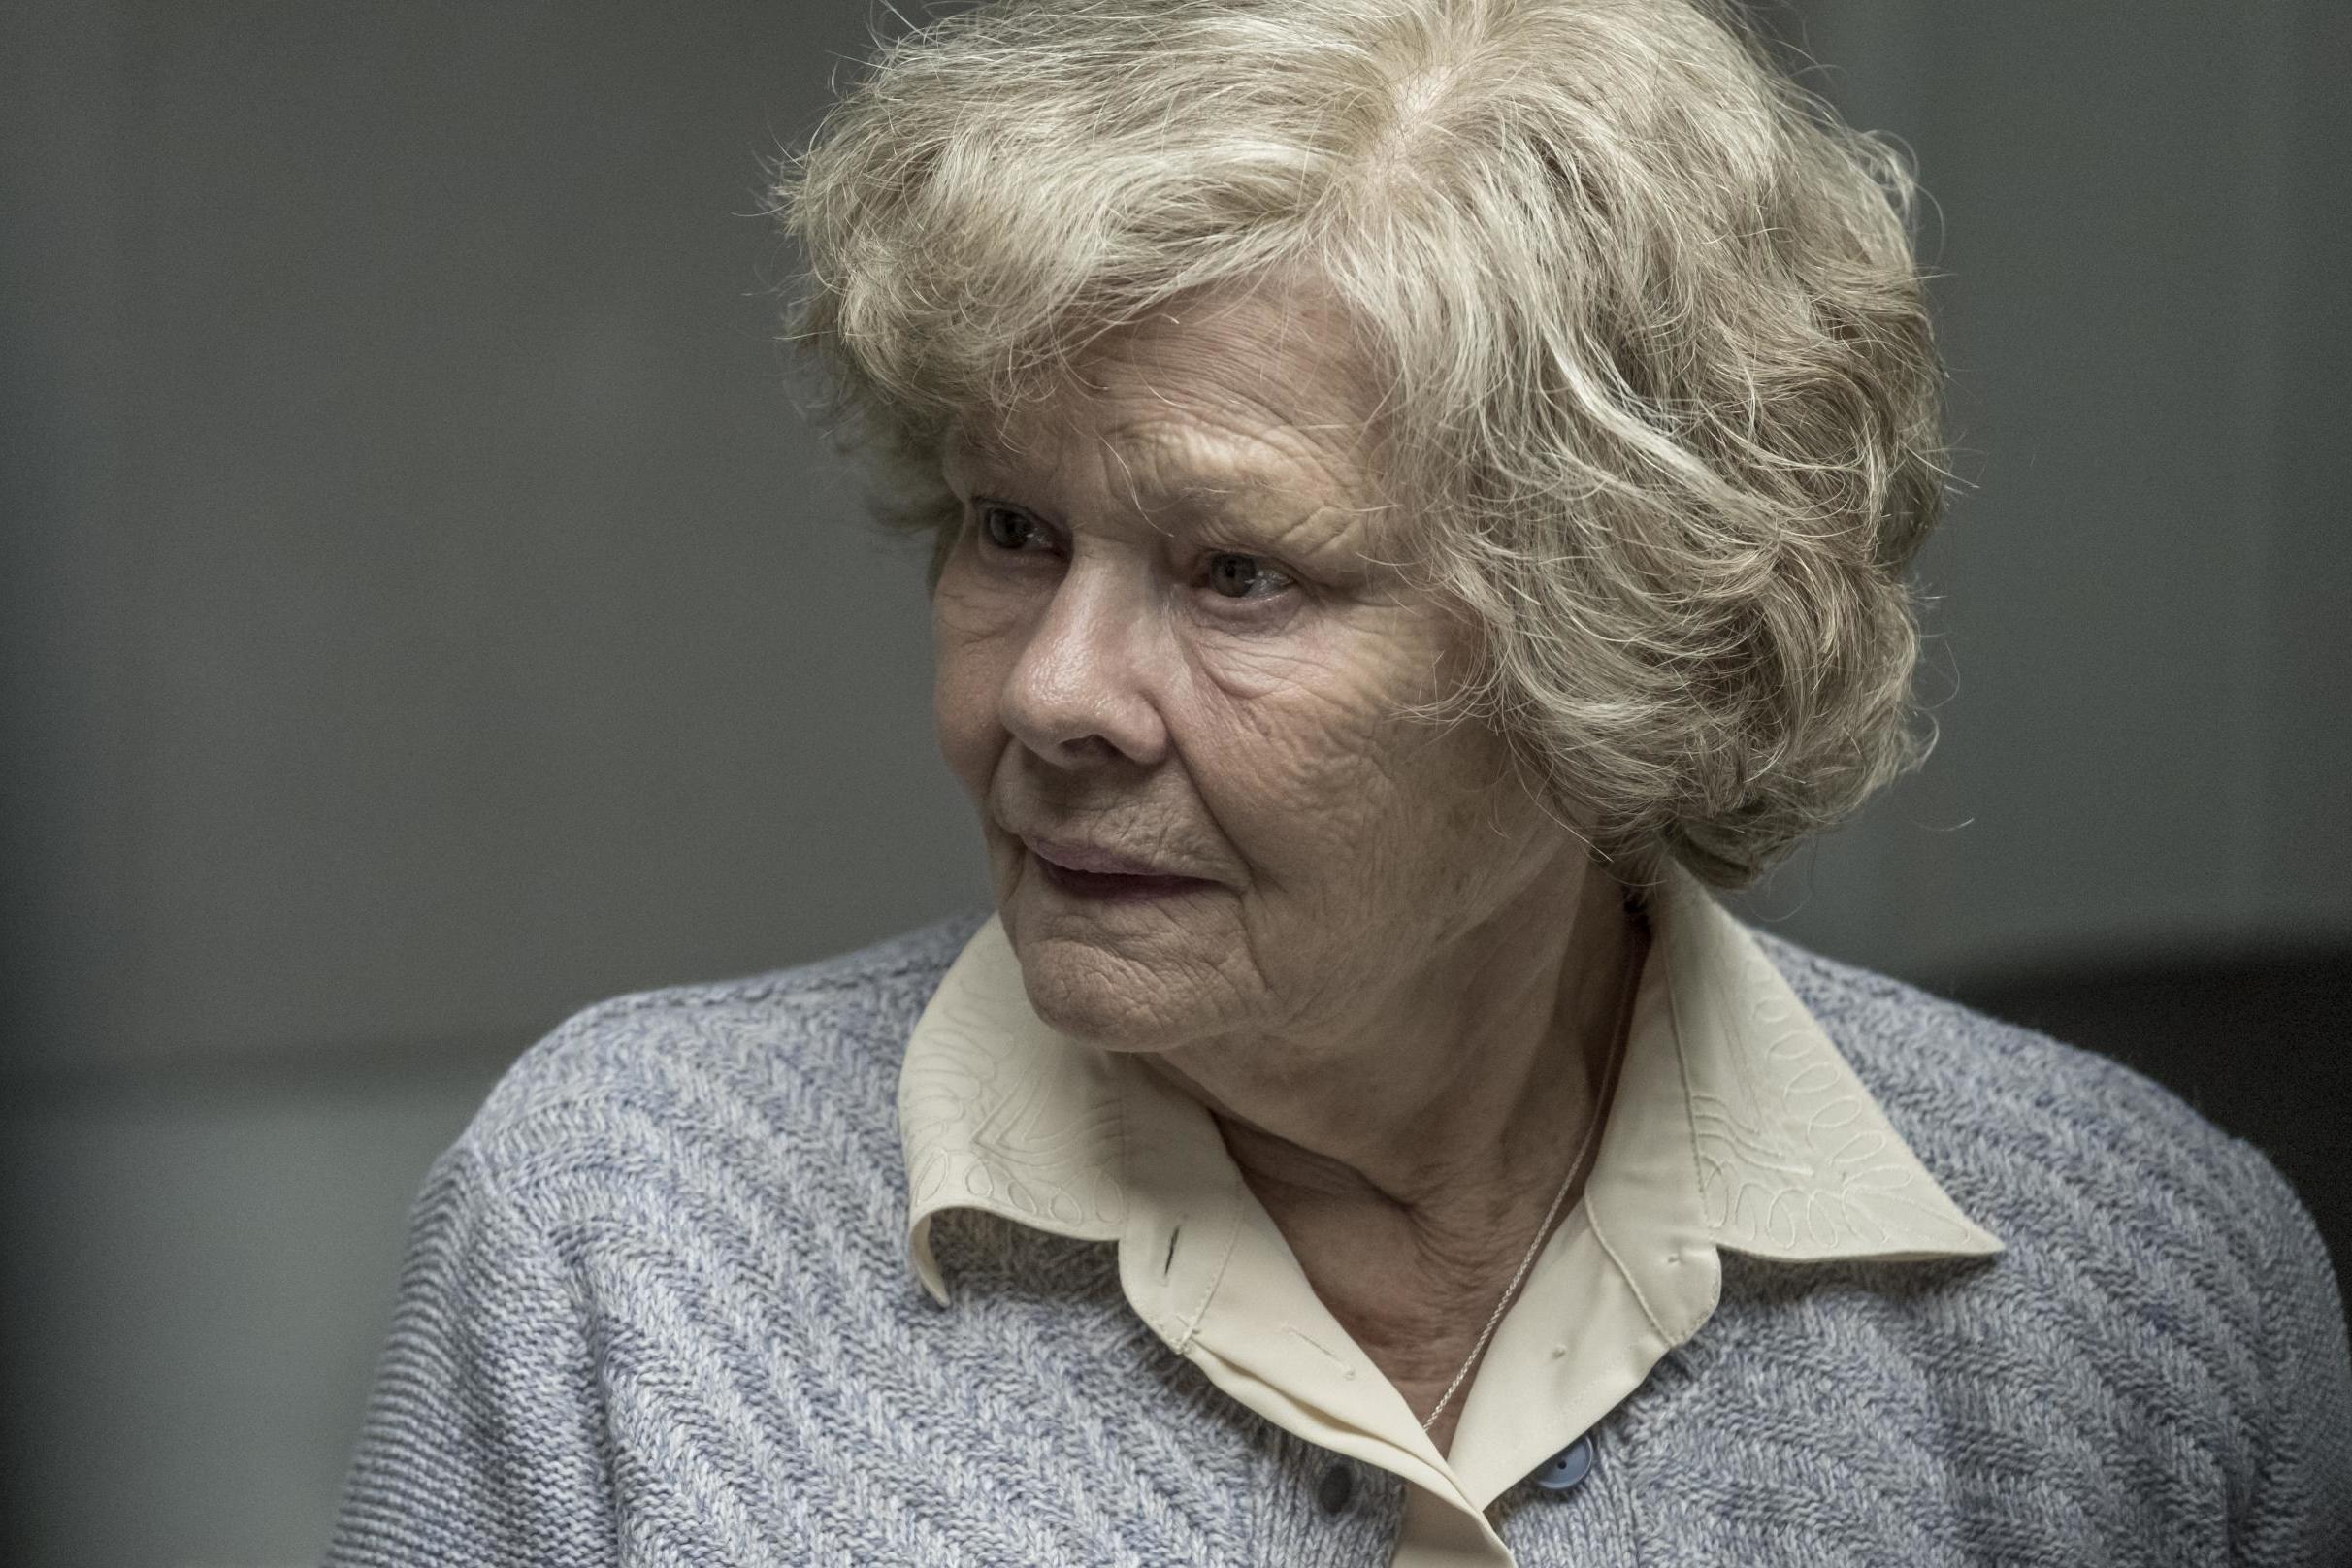 Red Joan review: Judi Dench gives a typically subtle and deft performance as the OAP Soviet spy